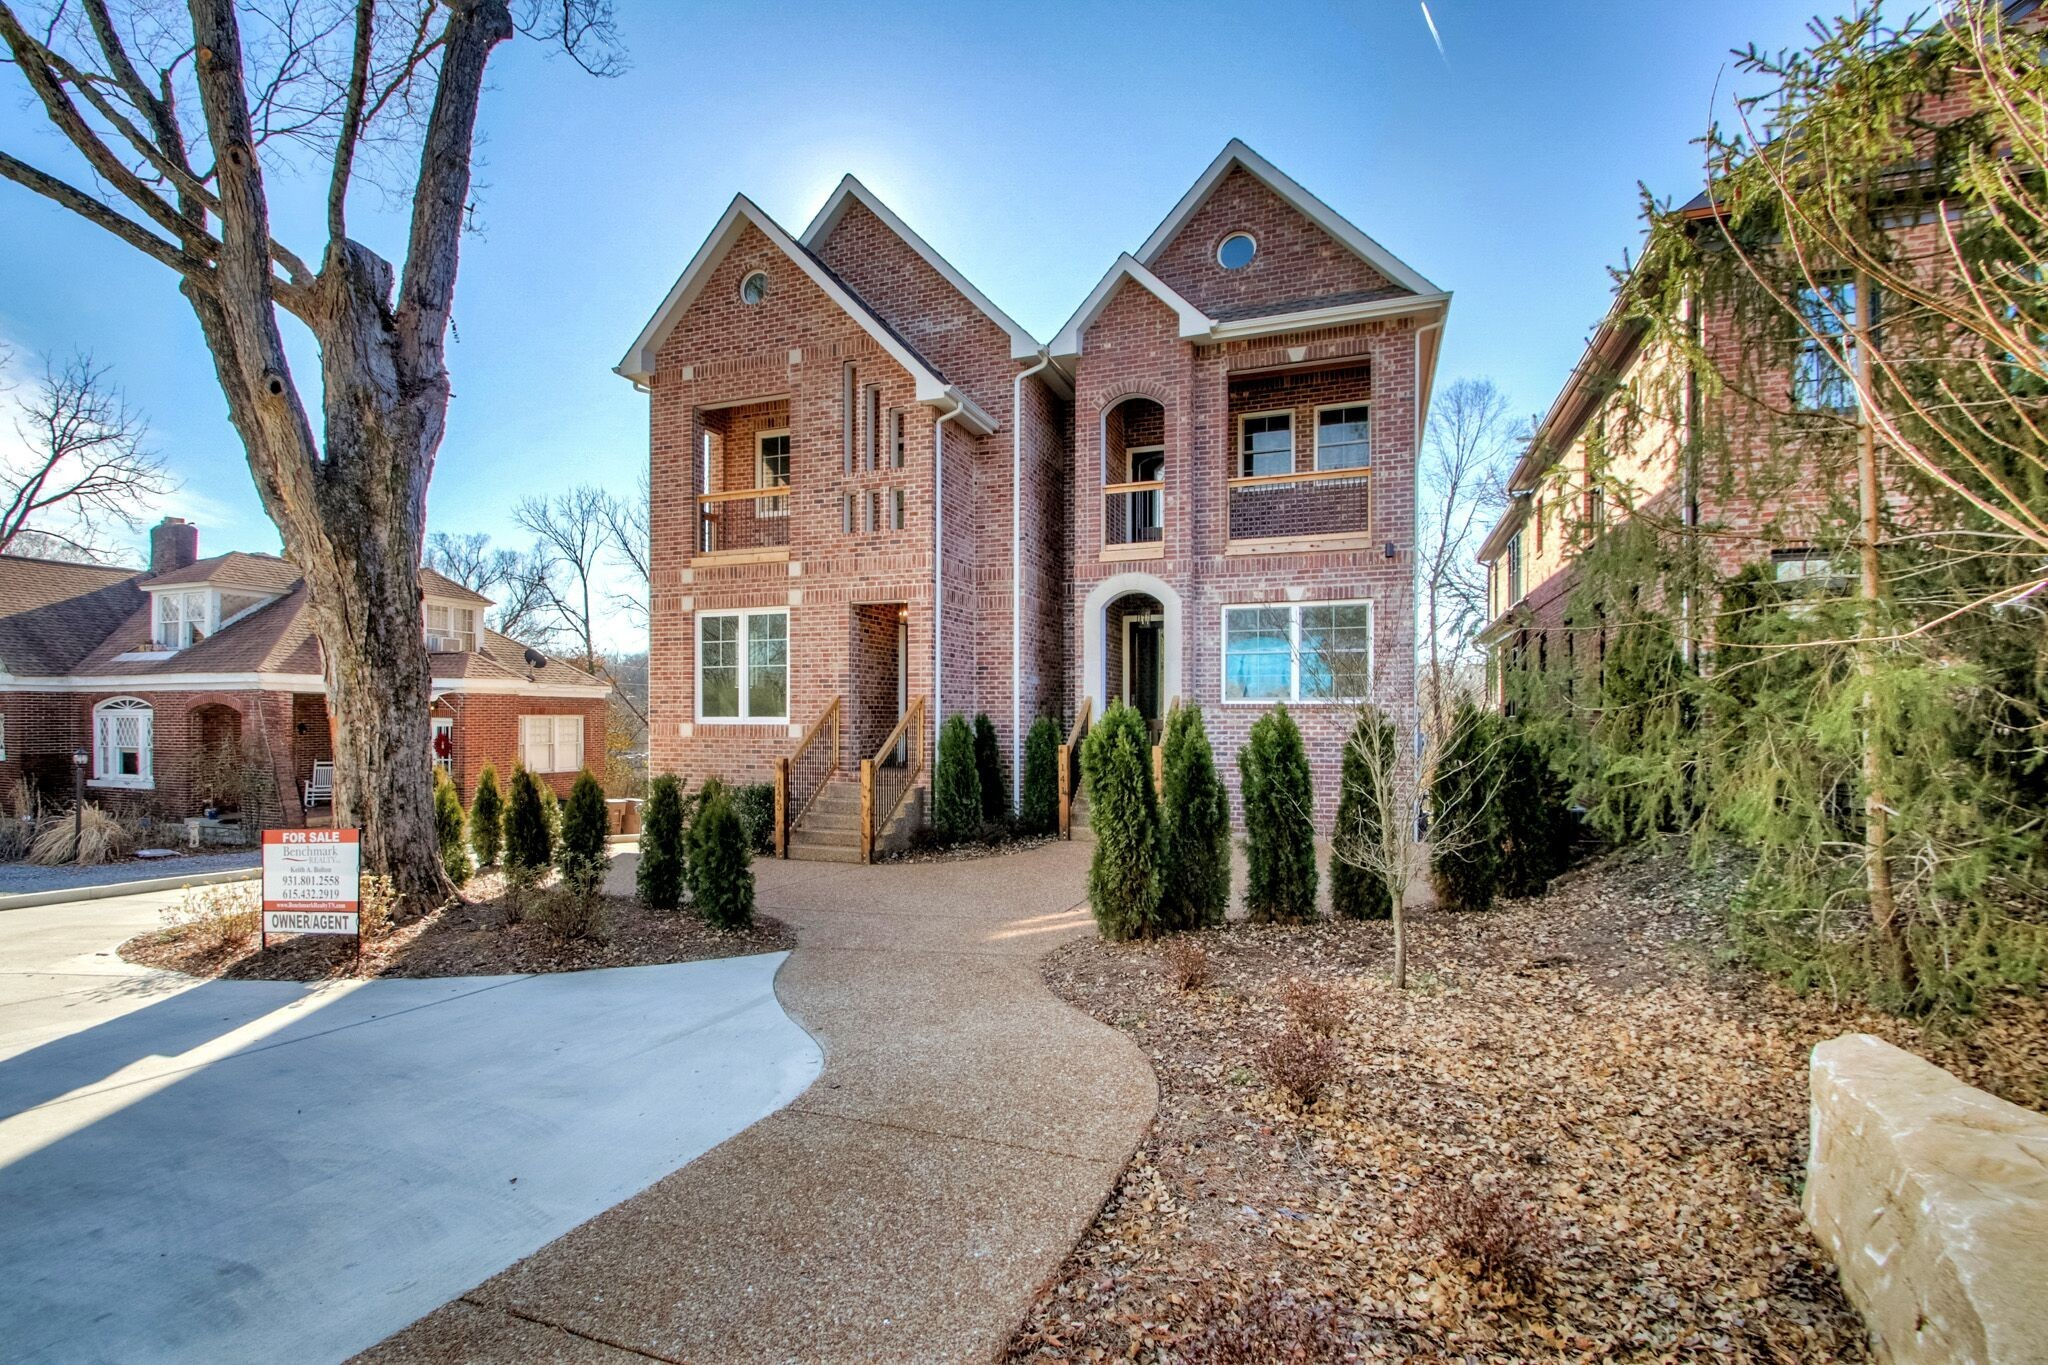 141 Woodmont Blvd, Belle Meade, Tennessee